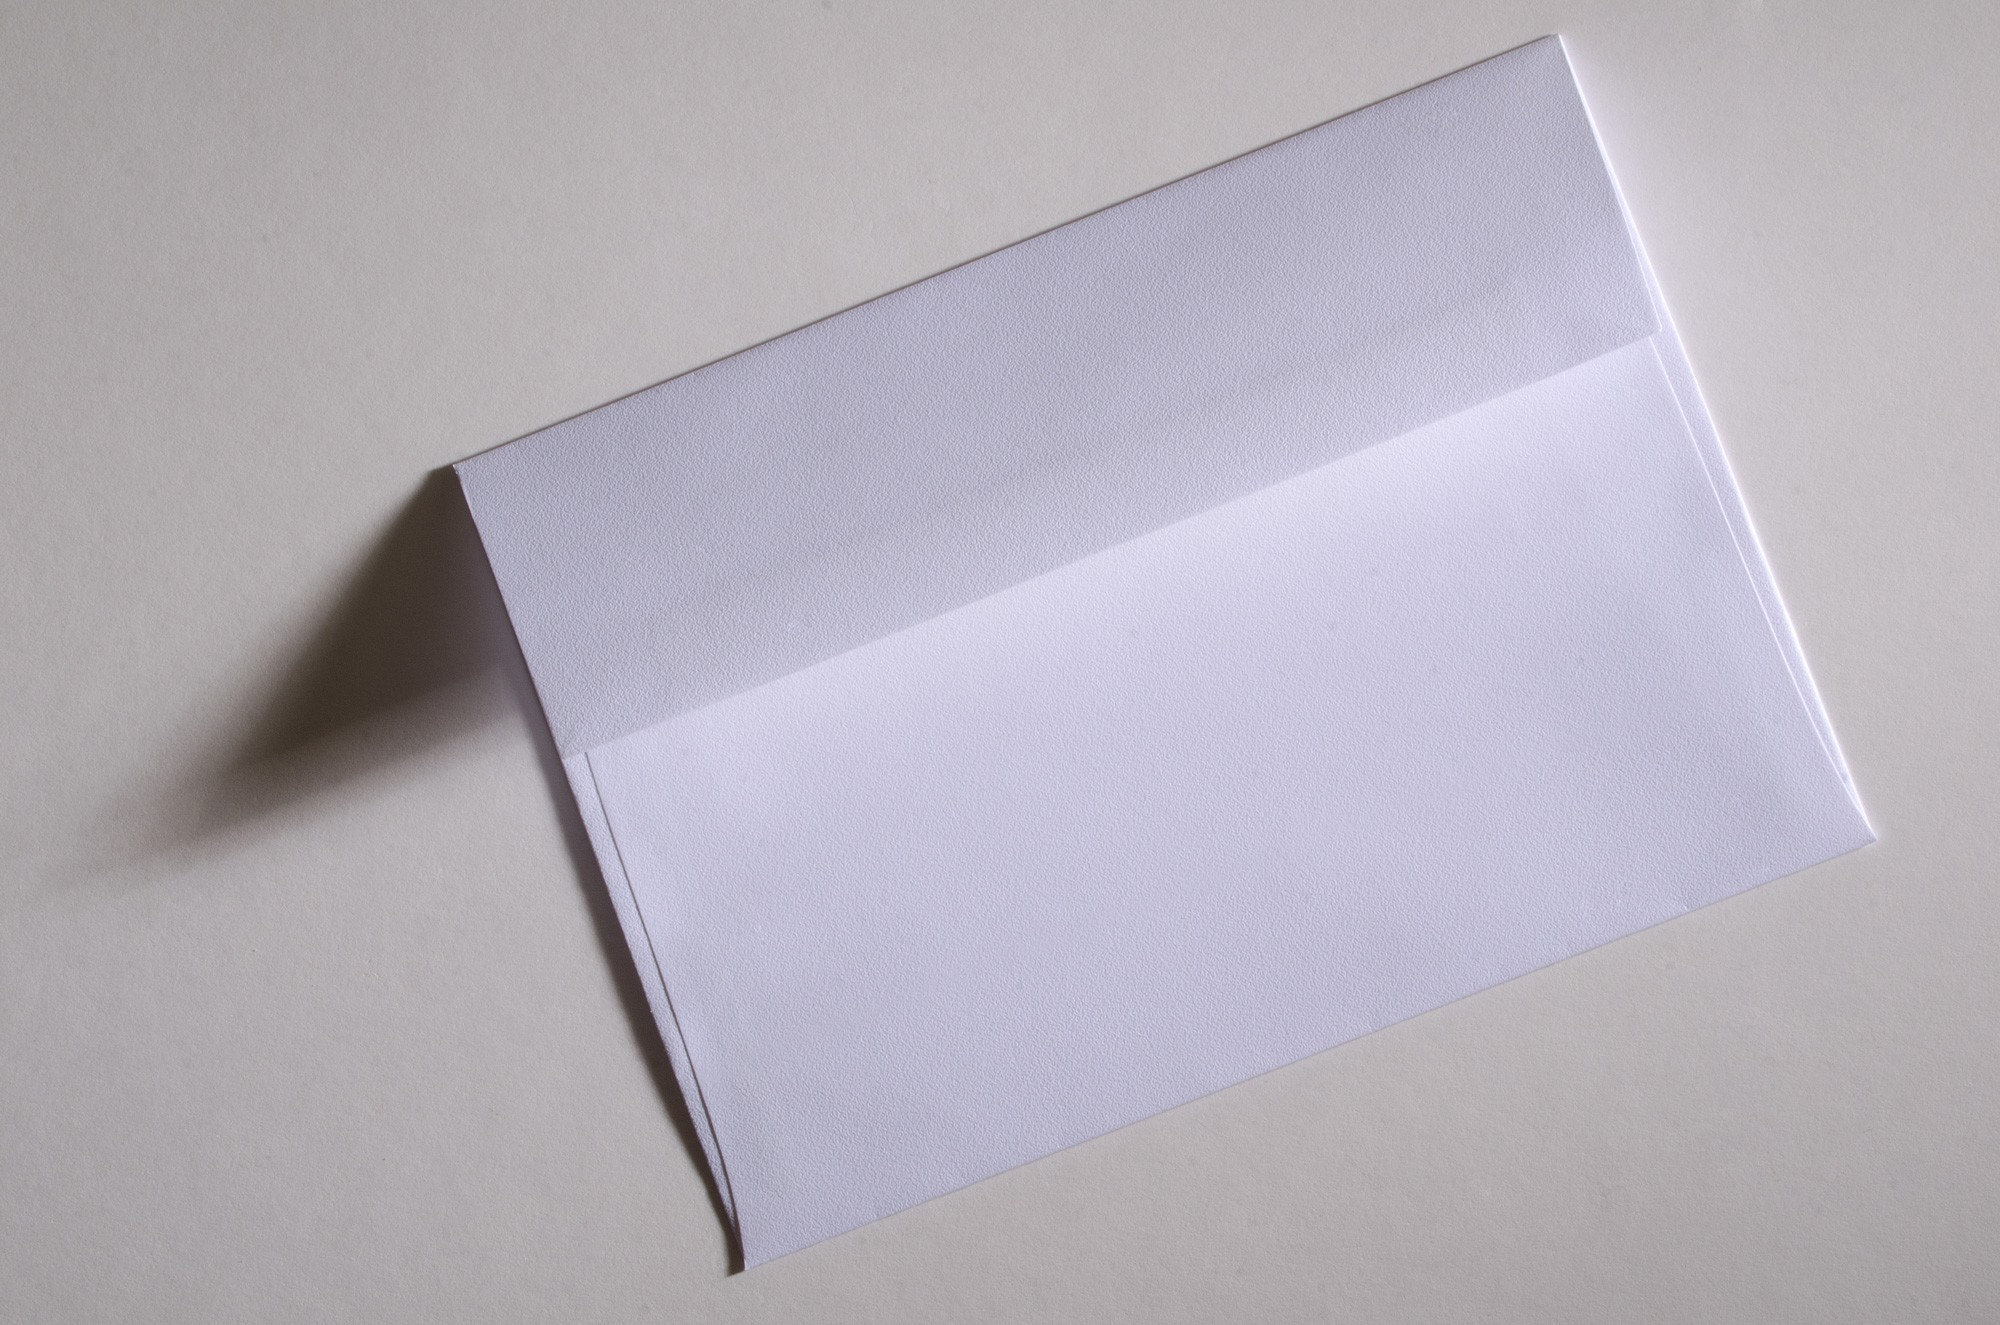 how to choose the right envelope size? - 1 envelope blog - How to Choose the Right Envelope Size?